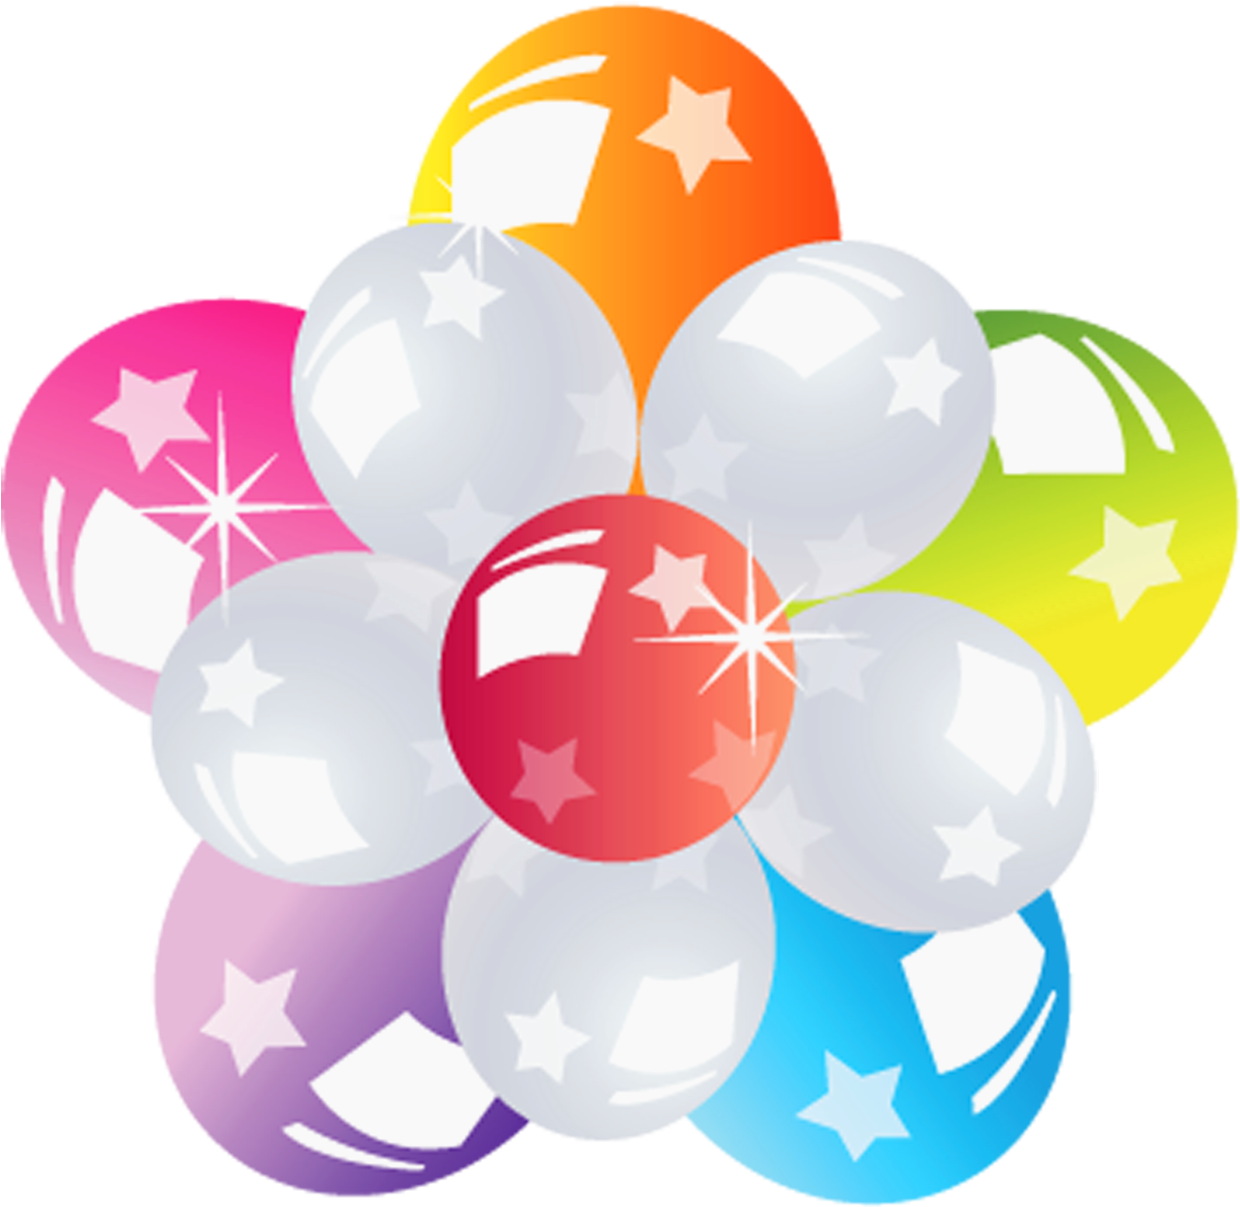 Png image format free download. Balloons bunch transparent picture